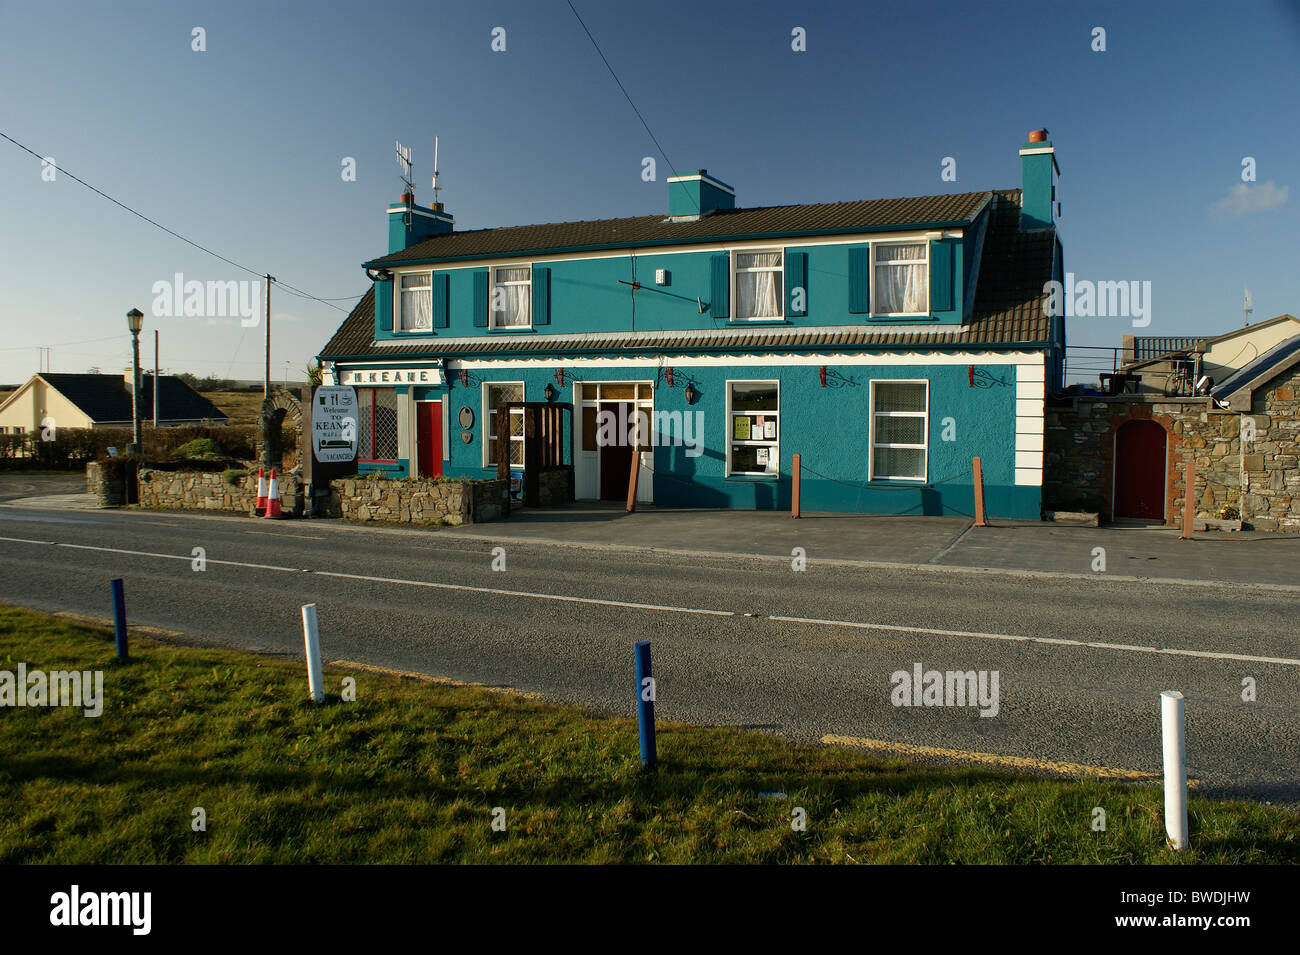 keane's oyster bar, restaurant & west clare visitor info centre, lisdeen, kilkee, county clare, ireland - Stock Image